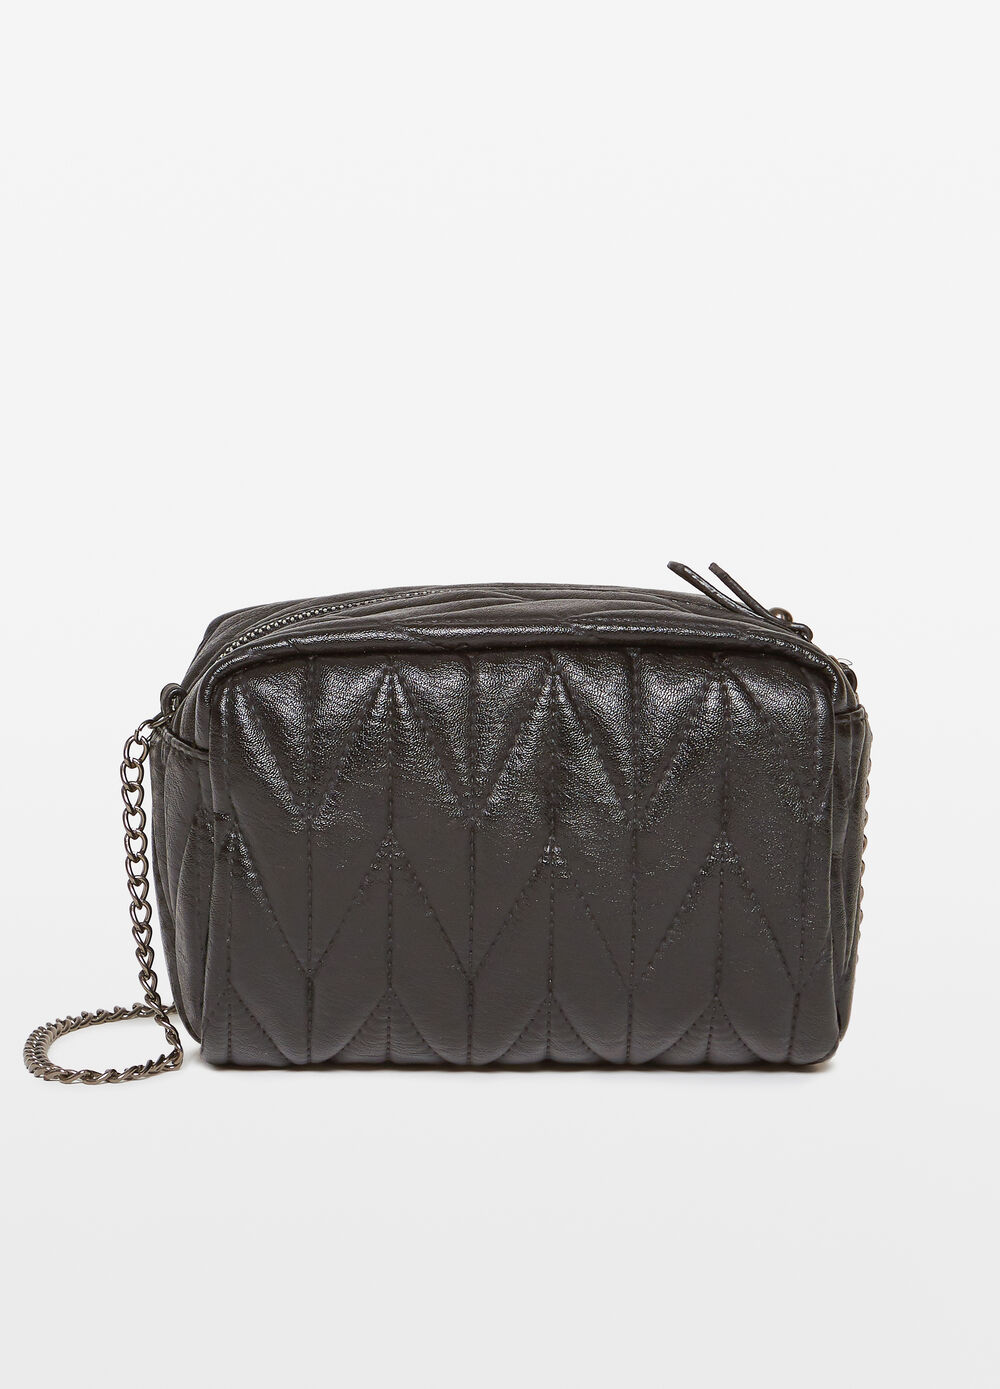 Quilted clutch bag with shoulder strap